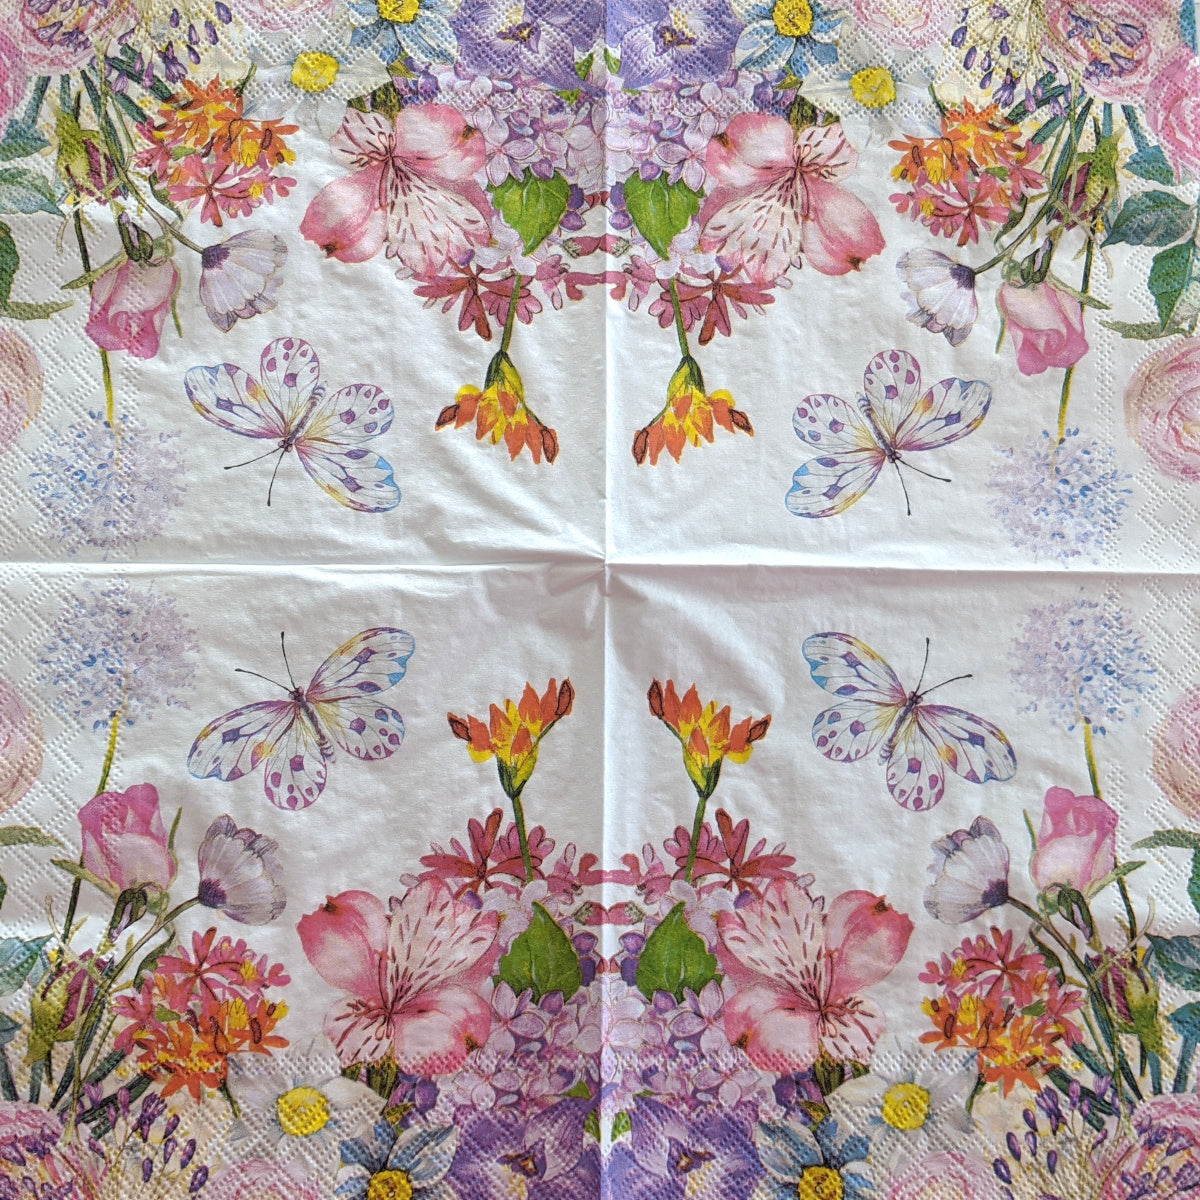 Flowergarden Napkin for Decoupage